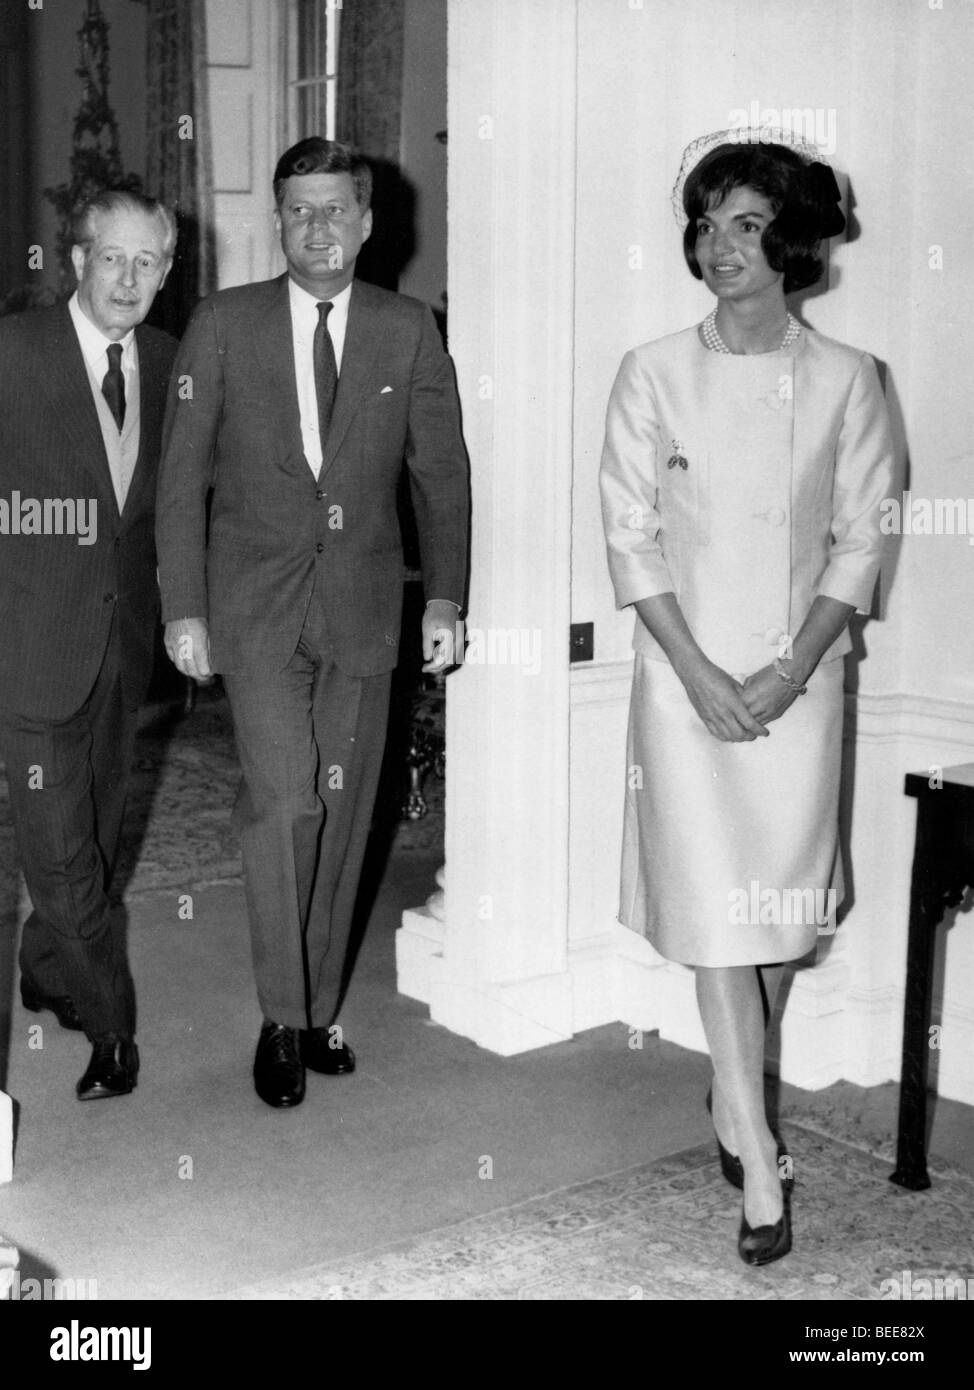 US President John F Kennedy, and First Lady Jaqueline during a visit to London for the christening of thier niece Stock Photo